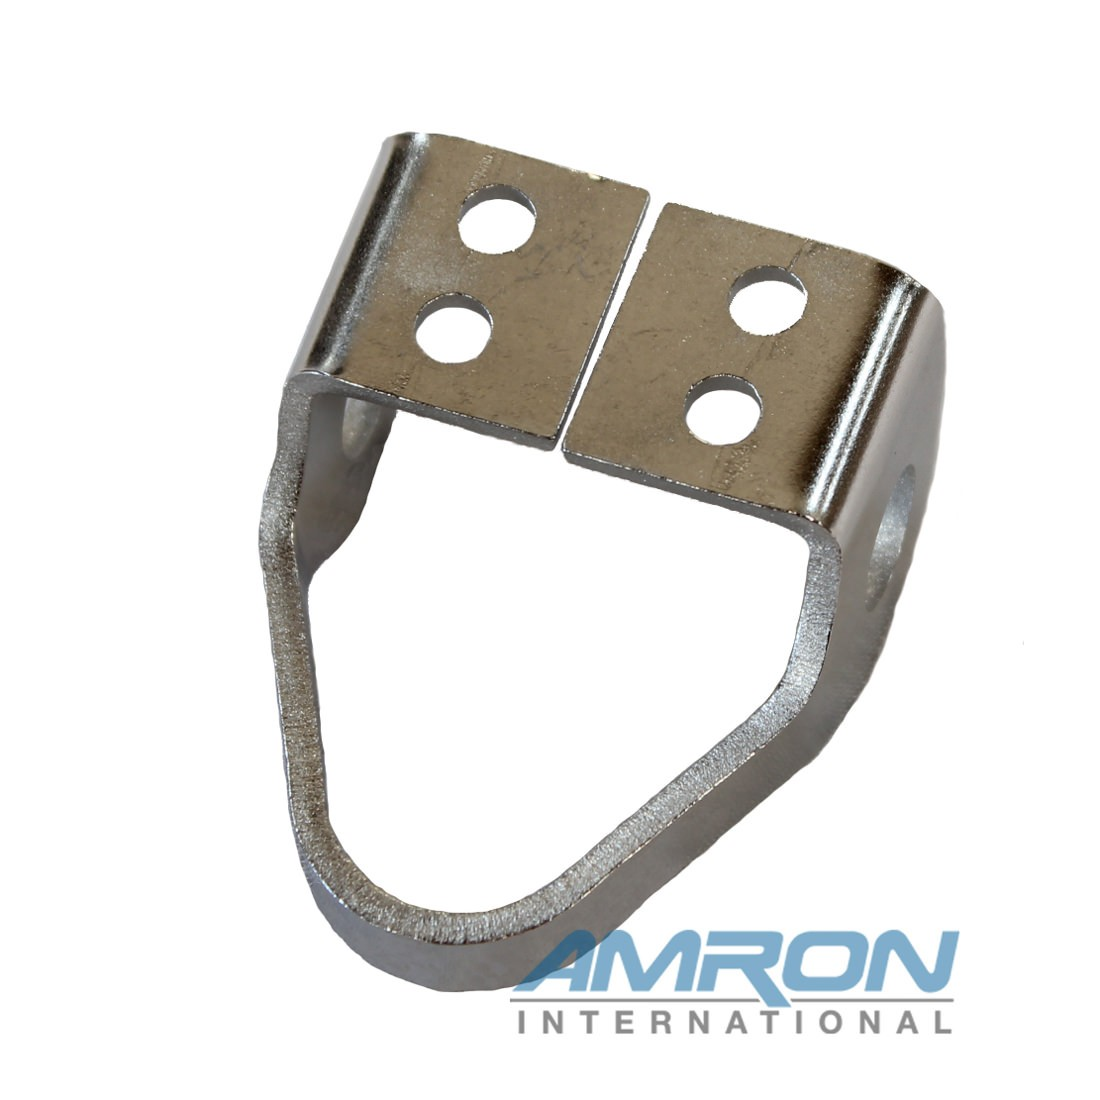 Kirby Morgan 540-157 Rear Hinge Tab